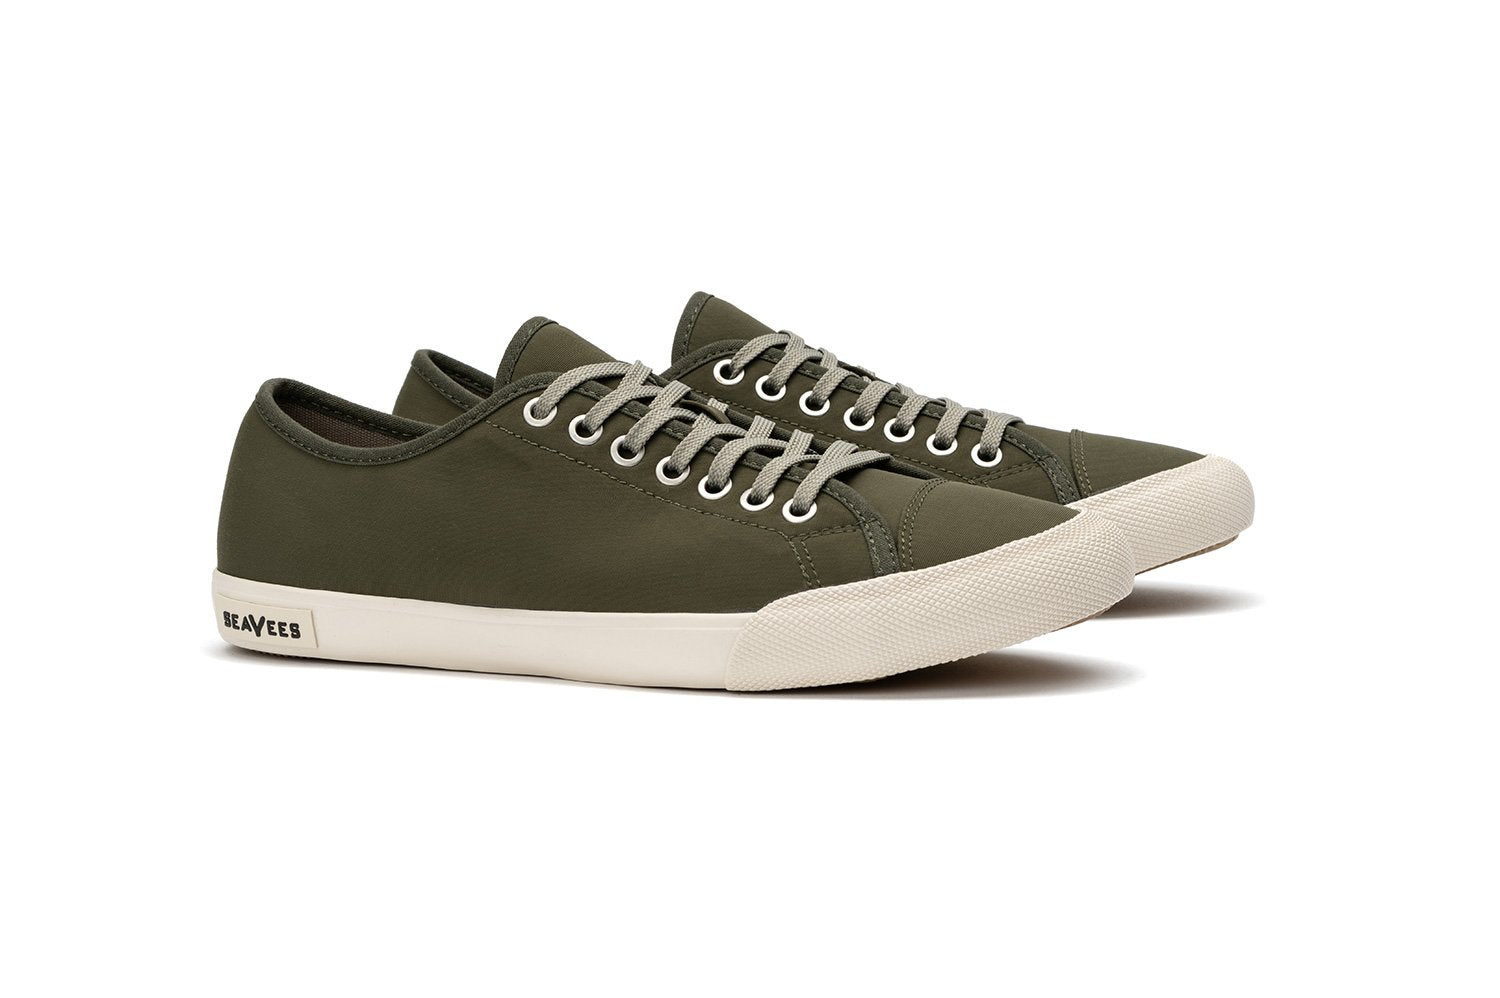 Mens - Army Issue Sneaker Standard - Military Olive